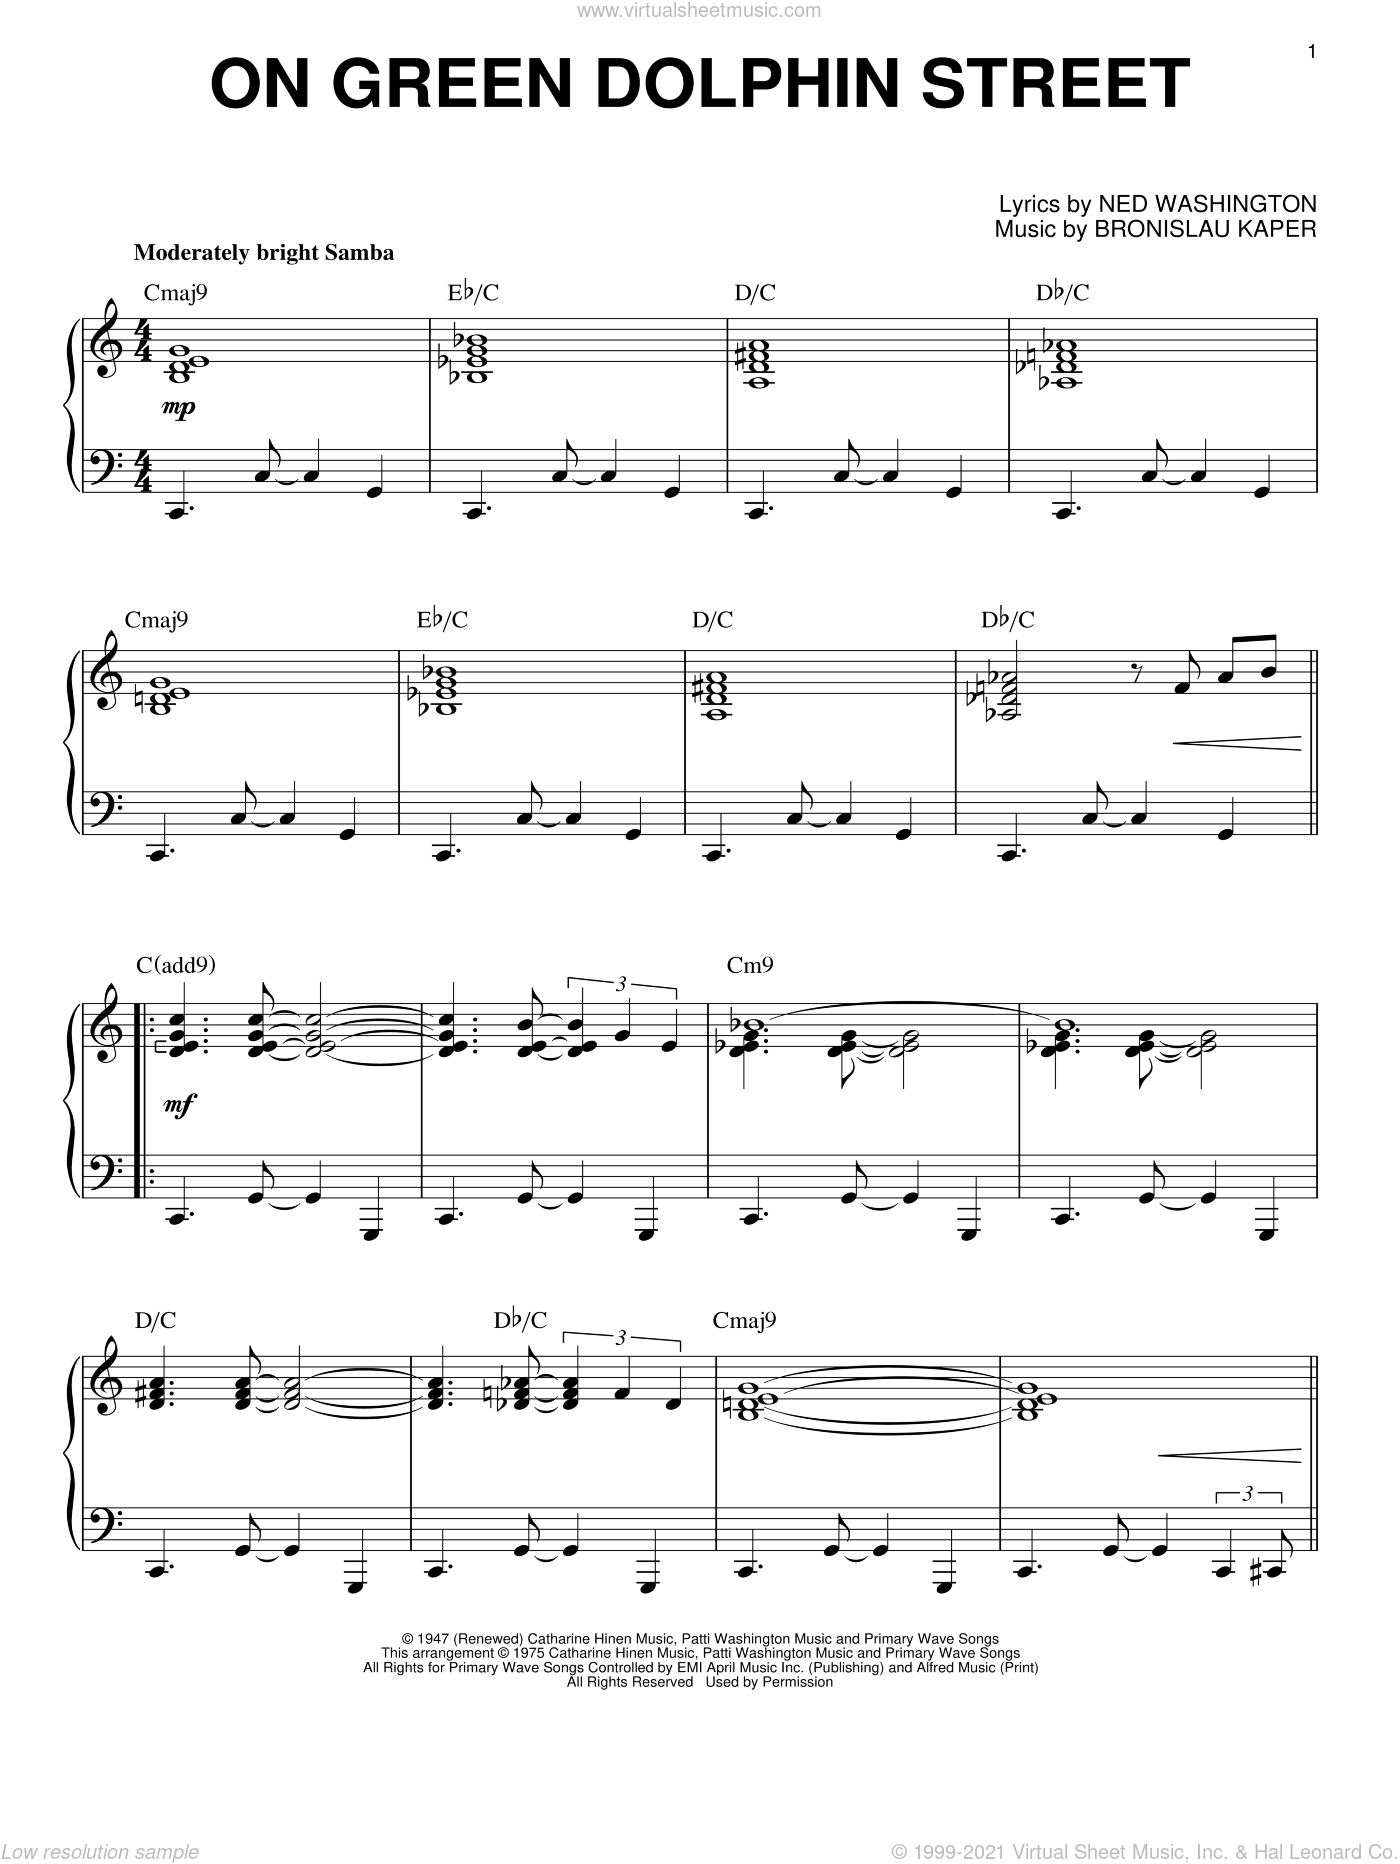 On Green Dolphin Street sheet music for piano solo by Bronislau Kaper